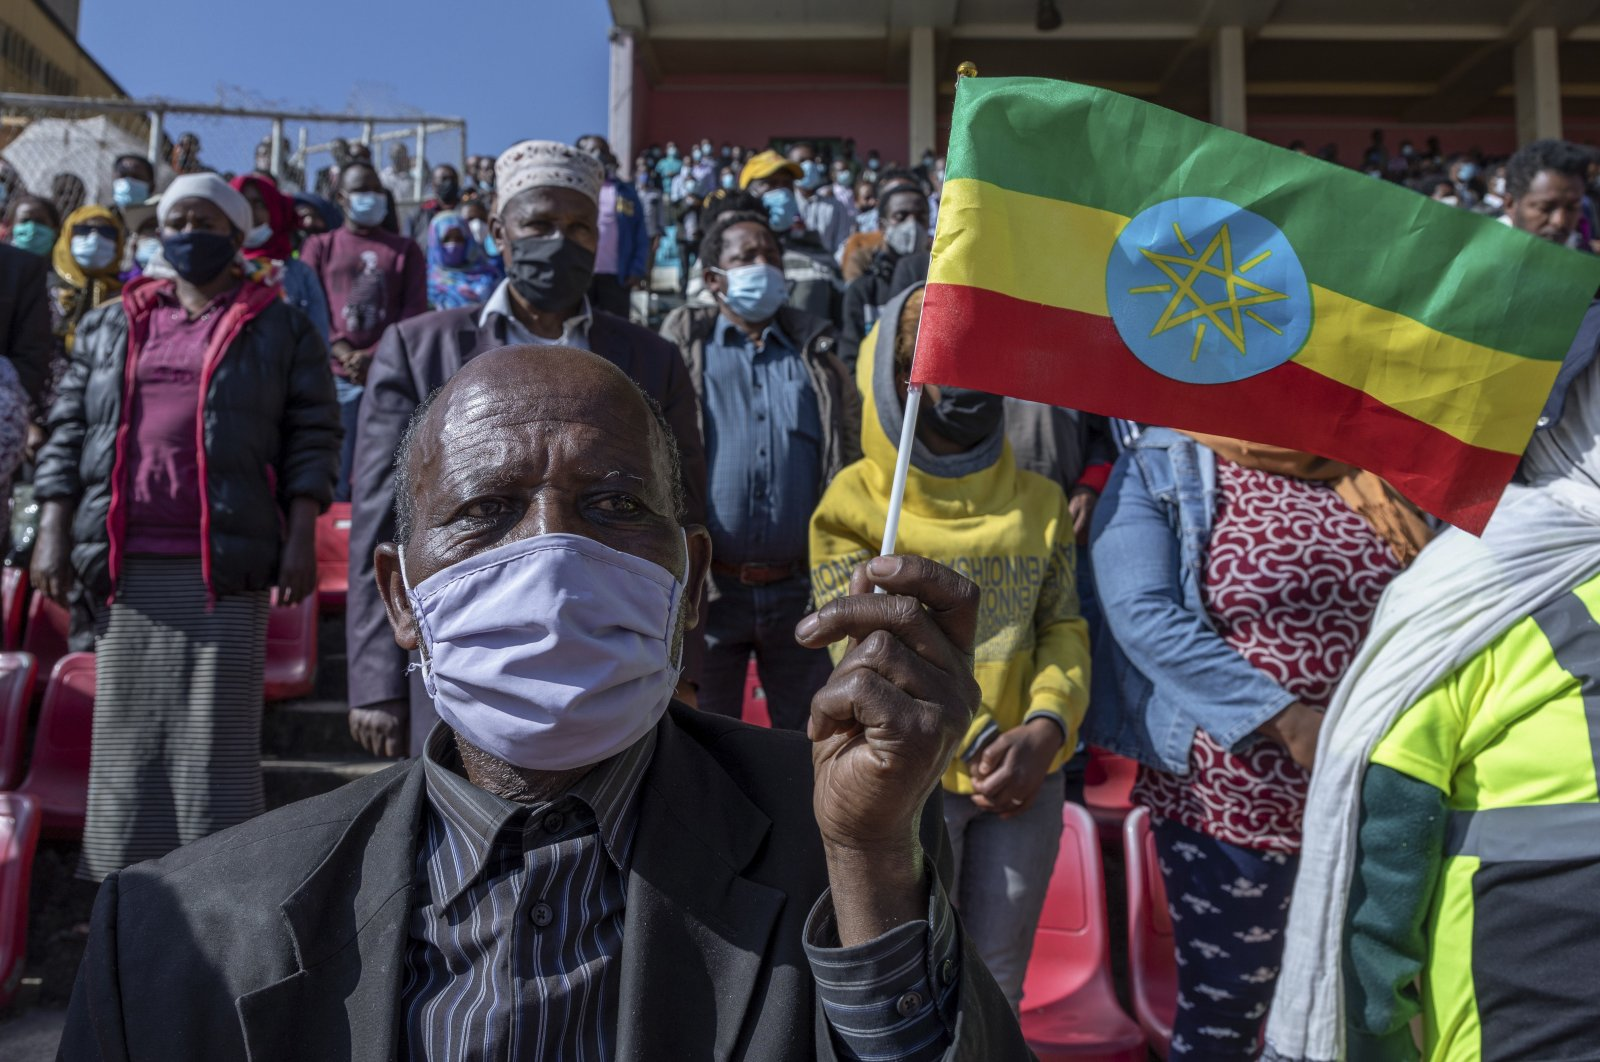 A man holds a national flag as he waits in the stands to give blood at a blood drive in support of the country's military, at a stadium in the capital Addis Ababa, Ethiopia, Nov. 12, 2020. (AP Photo)